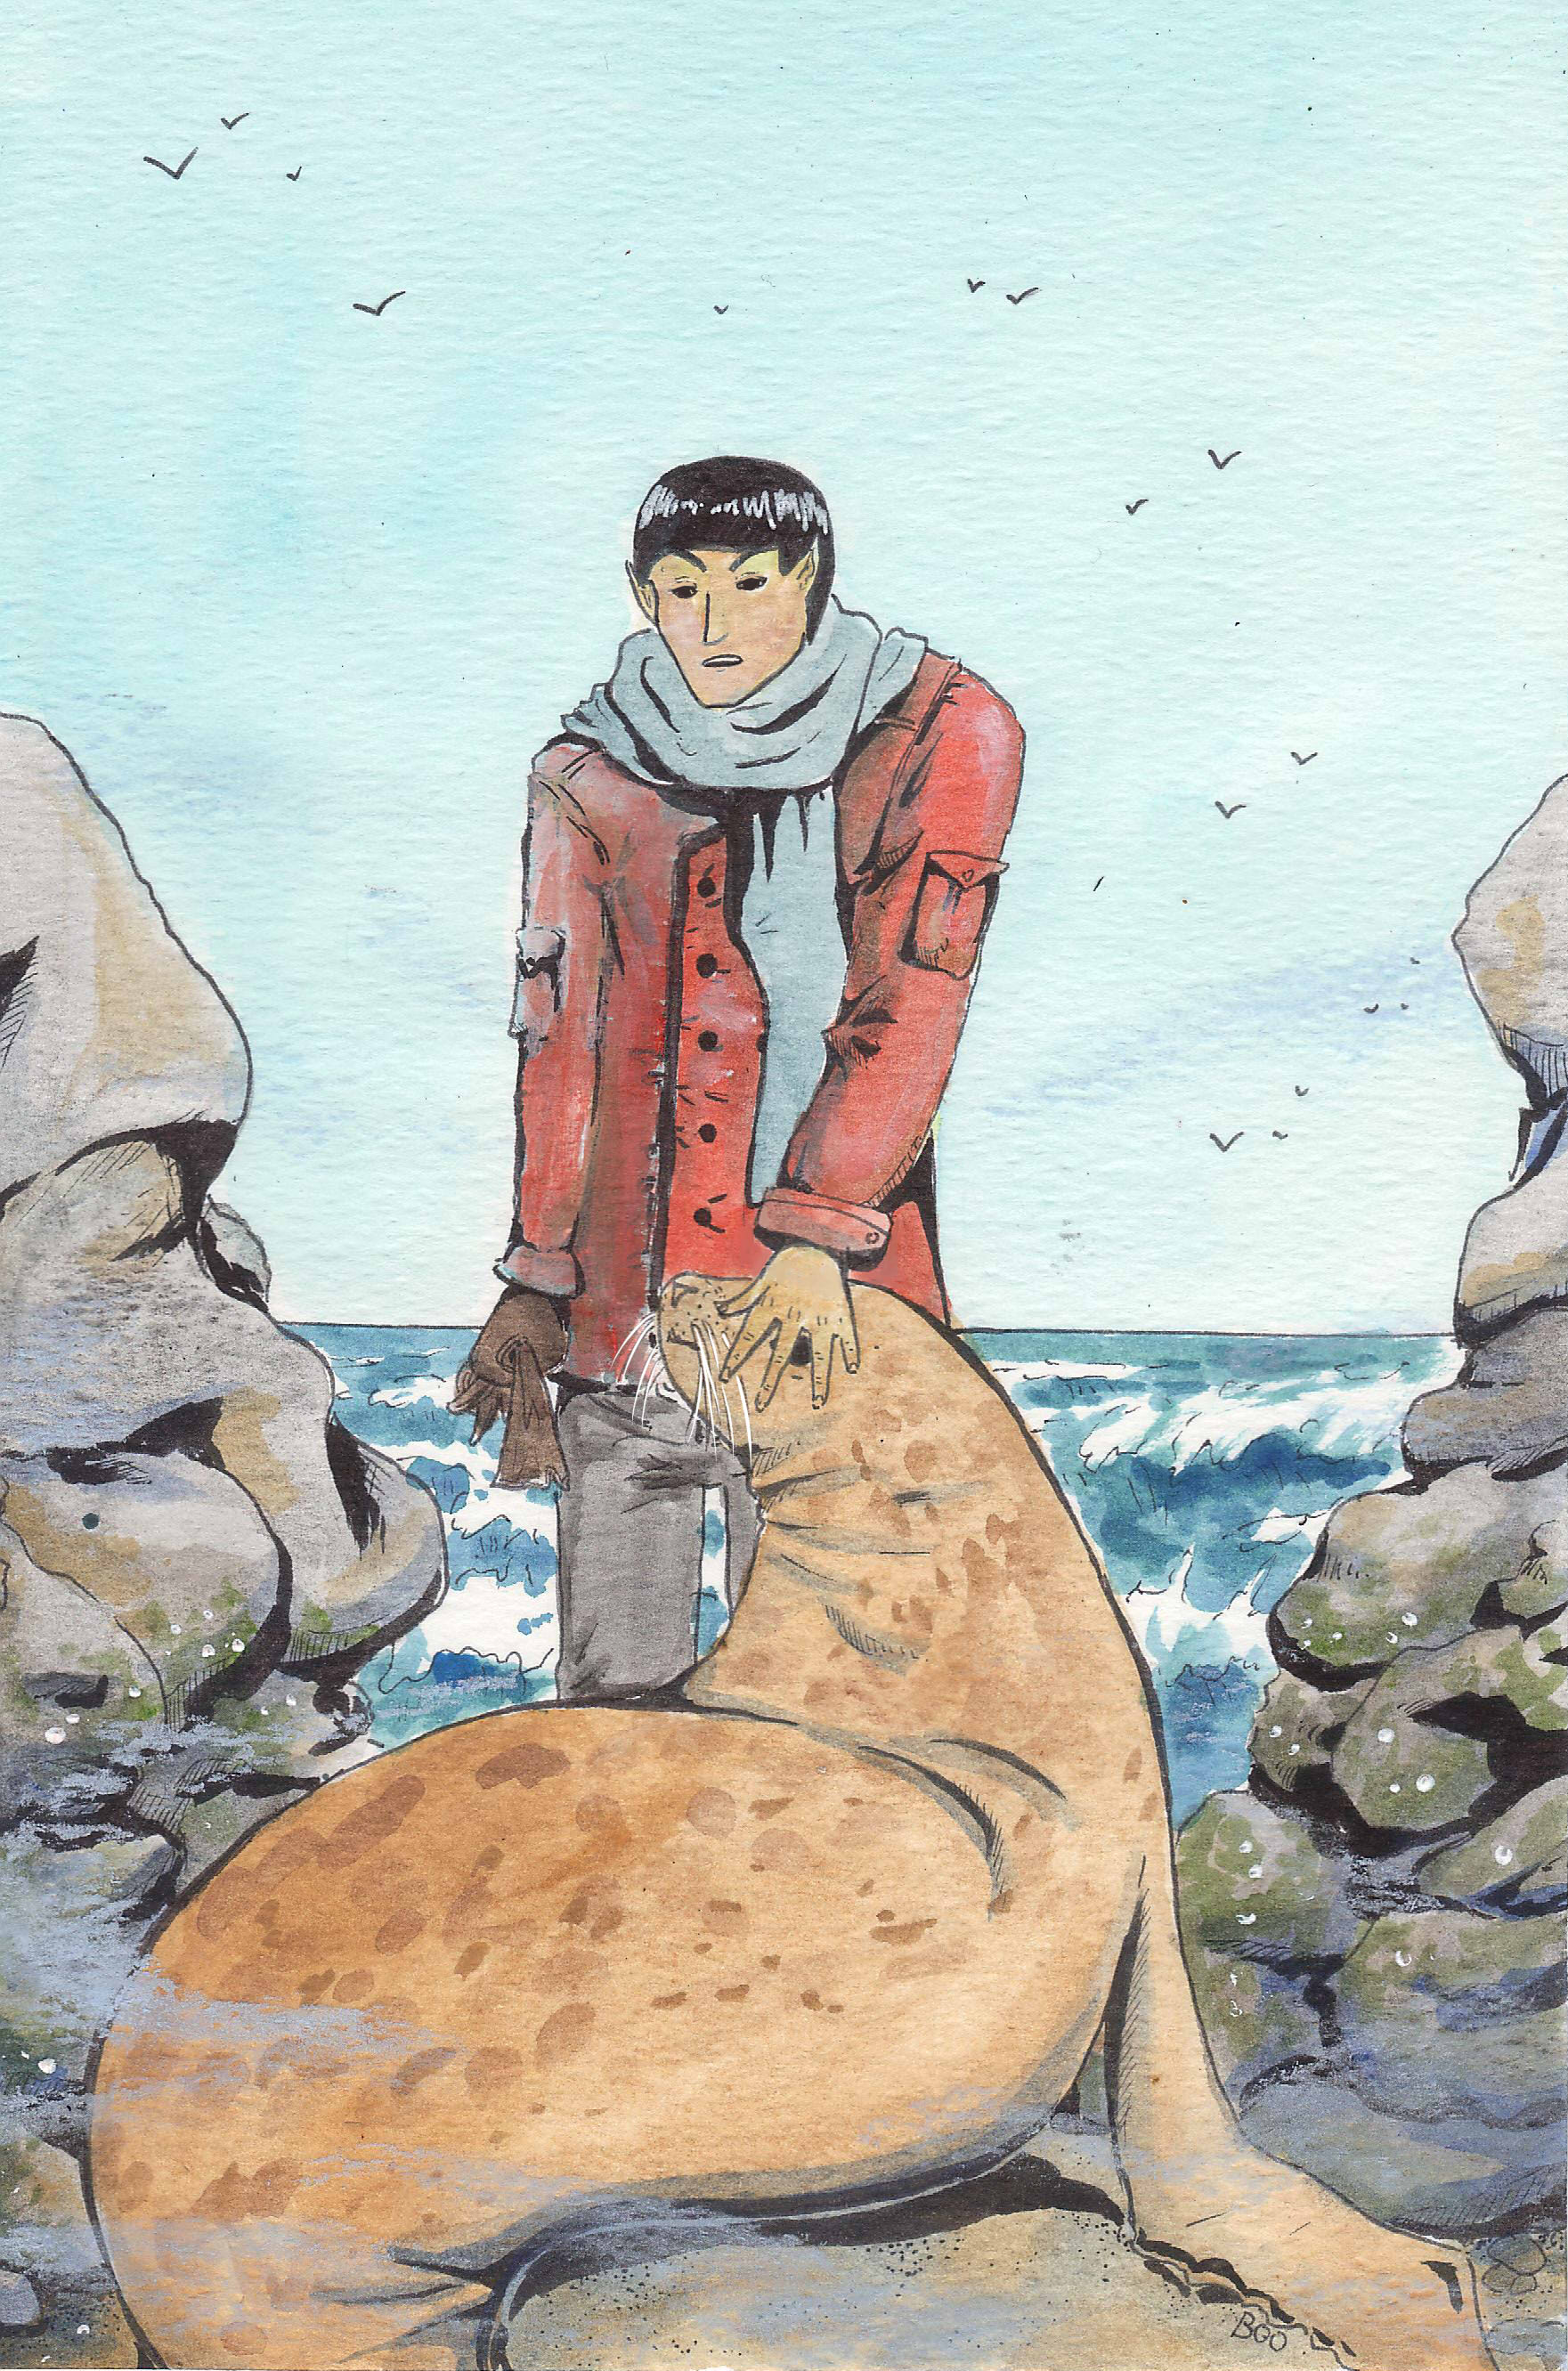 ksbb12 The Vulcan and the Selkie